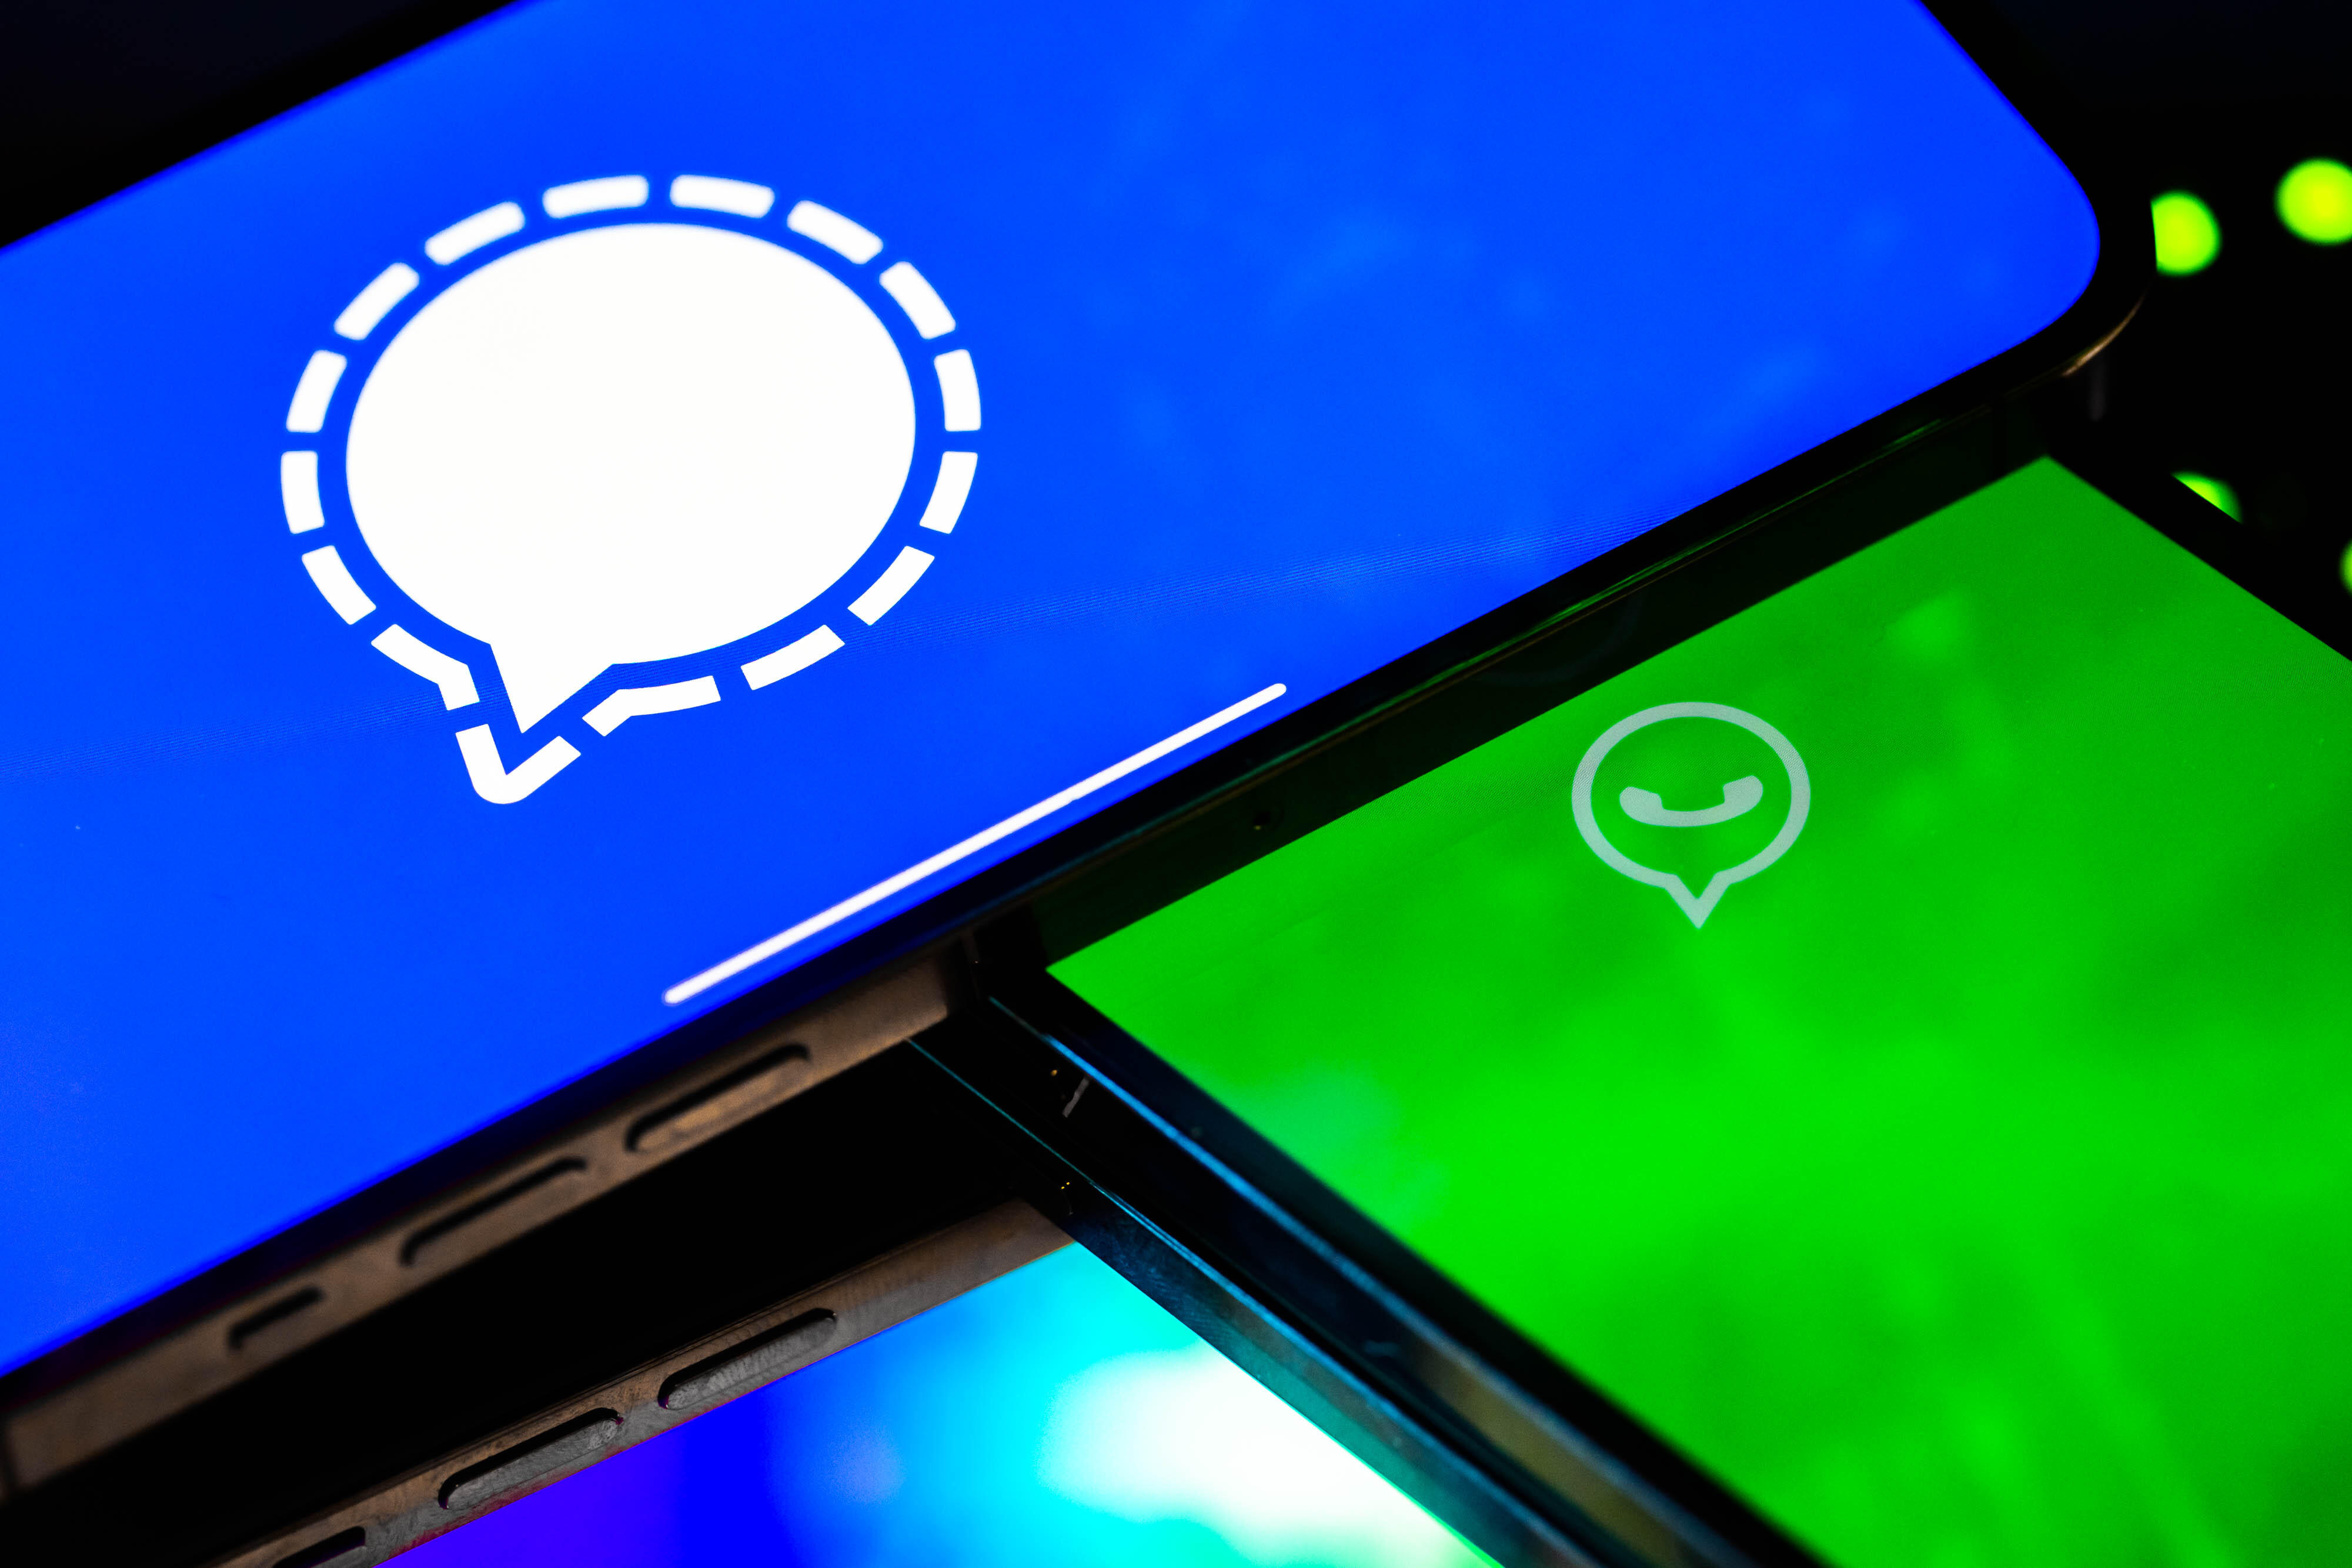 Signal and WhatsApp messaging